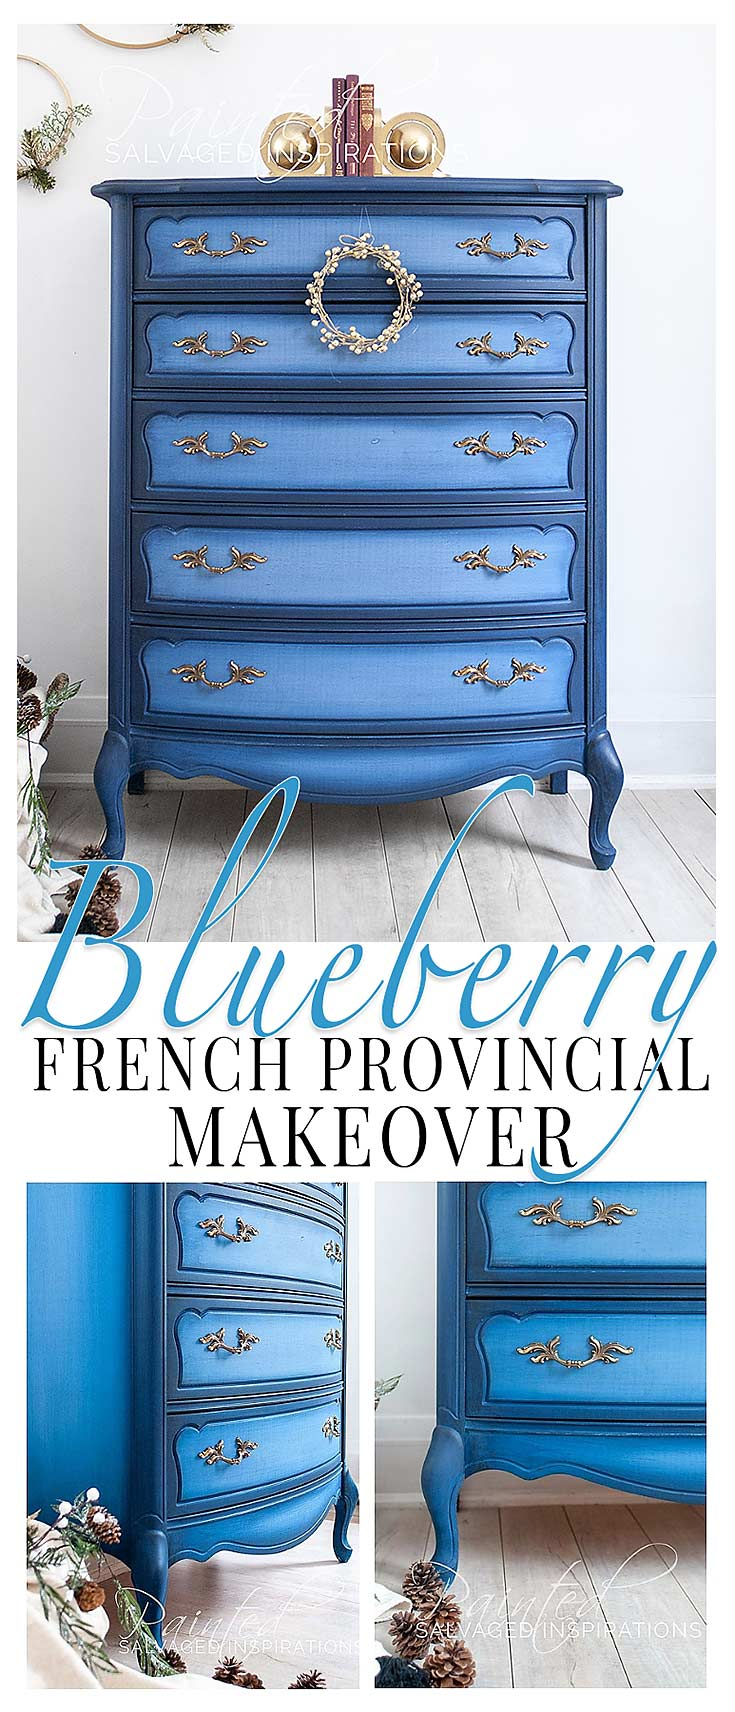 Blueberry French Provincial Makeover